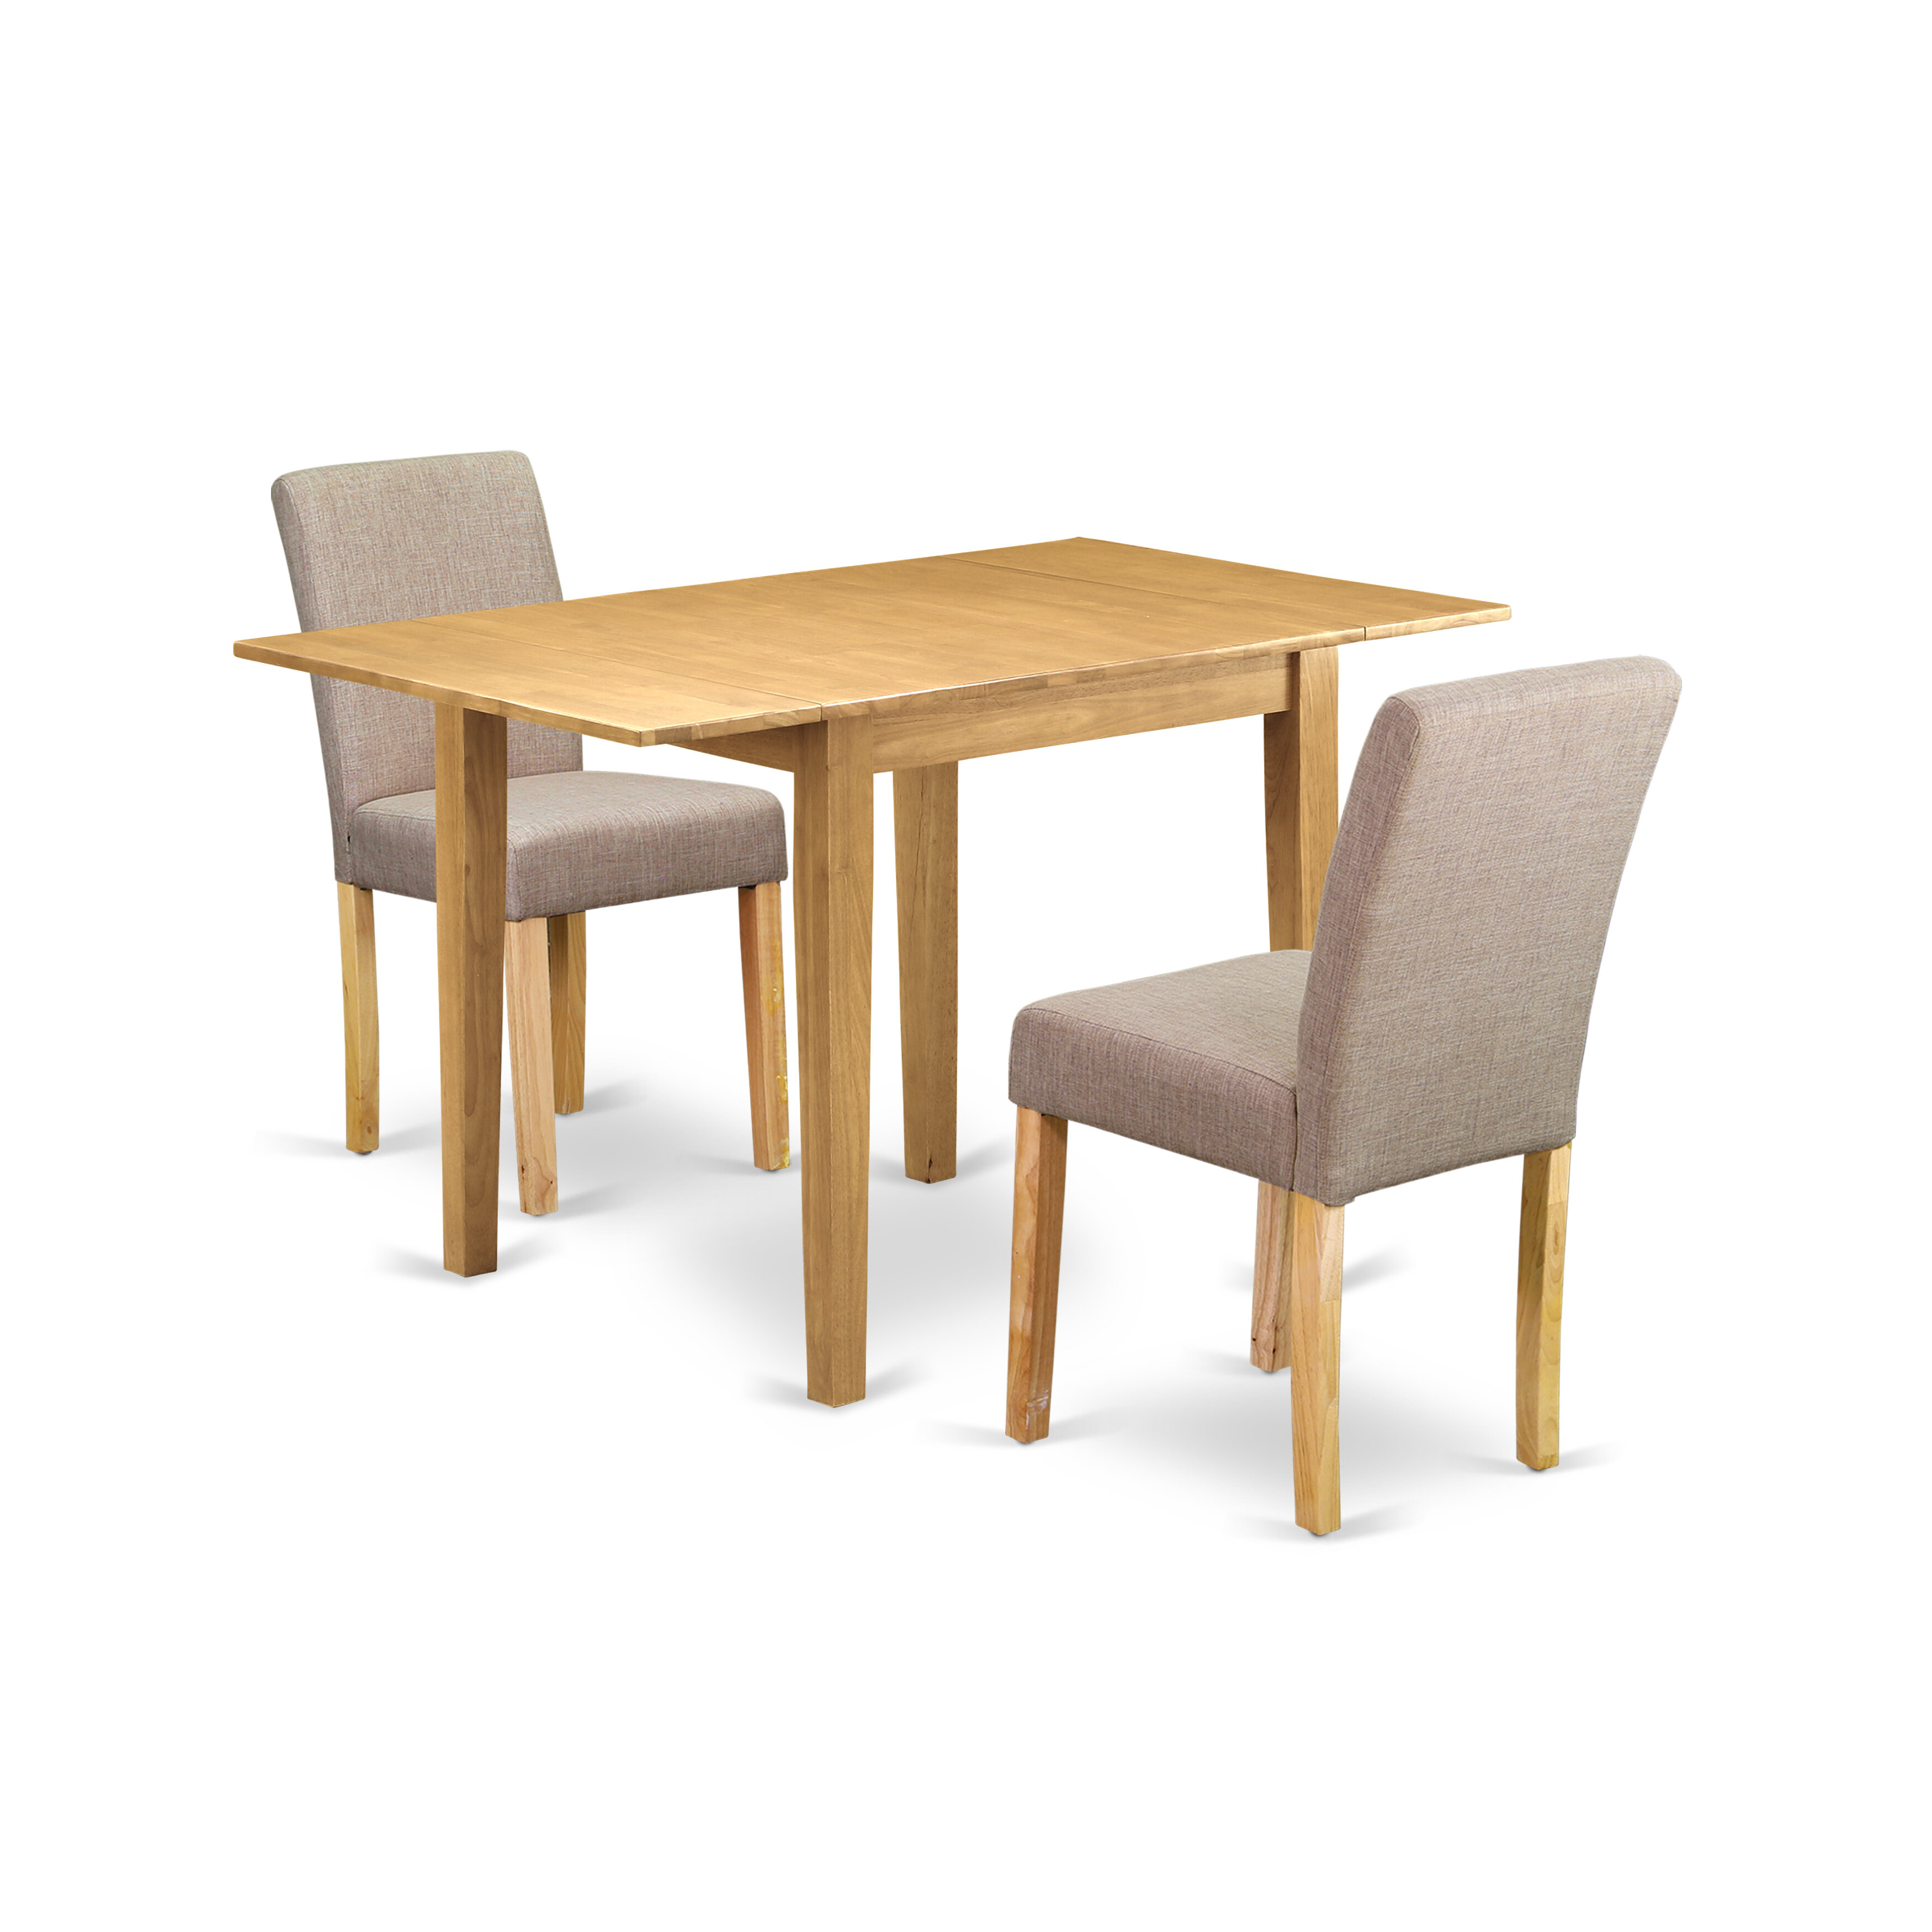 Picture of: Winston Porter Modern Dining Table Set 3 Pc Two Parson Chairs And A Dining Room Table Mahogany Finish Wood Coffee Colour Linen Fabric Reviews Wayfair Ca